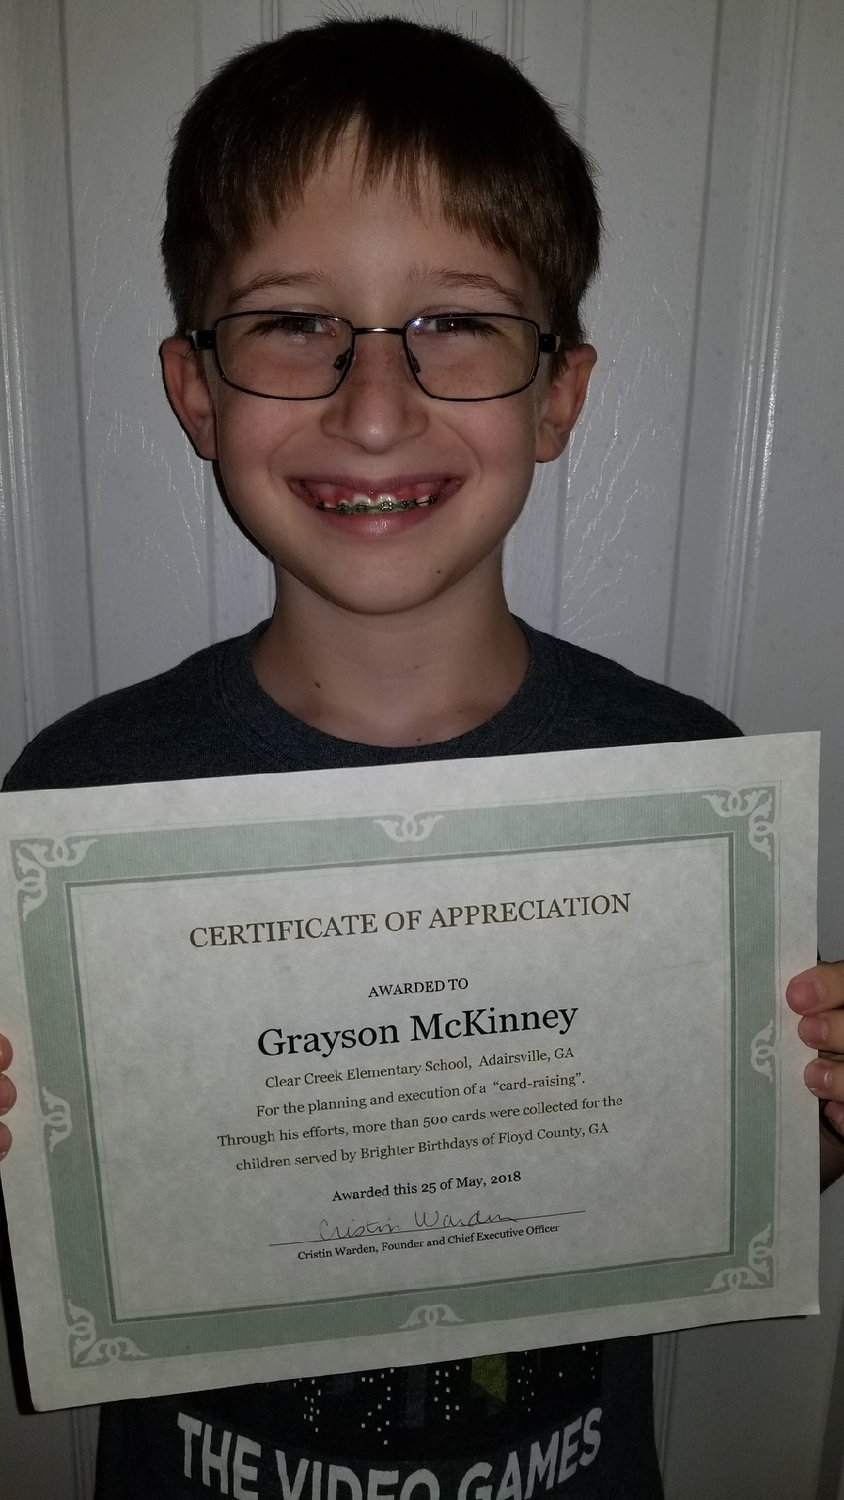 Brighter Birthdays presented Grayson McKinney with a certificate for the 500-plus cards he donated to help ensure no kids were forgotten on their birthdays.